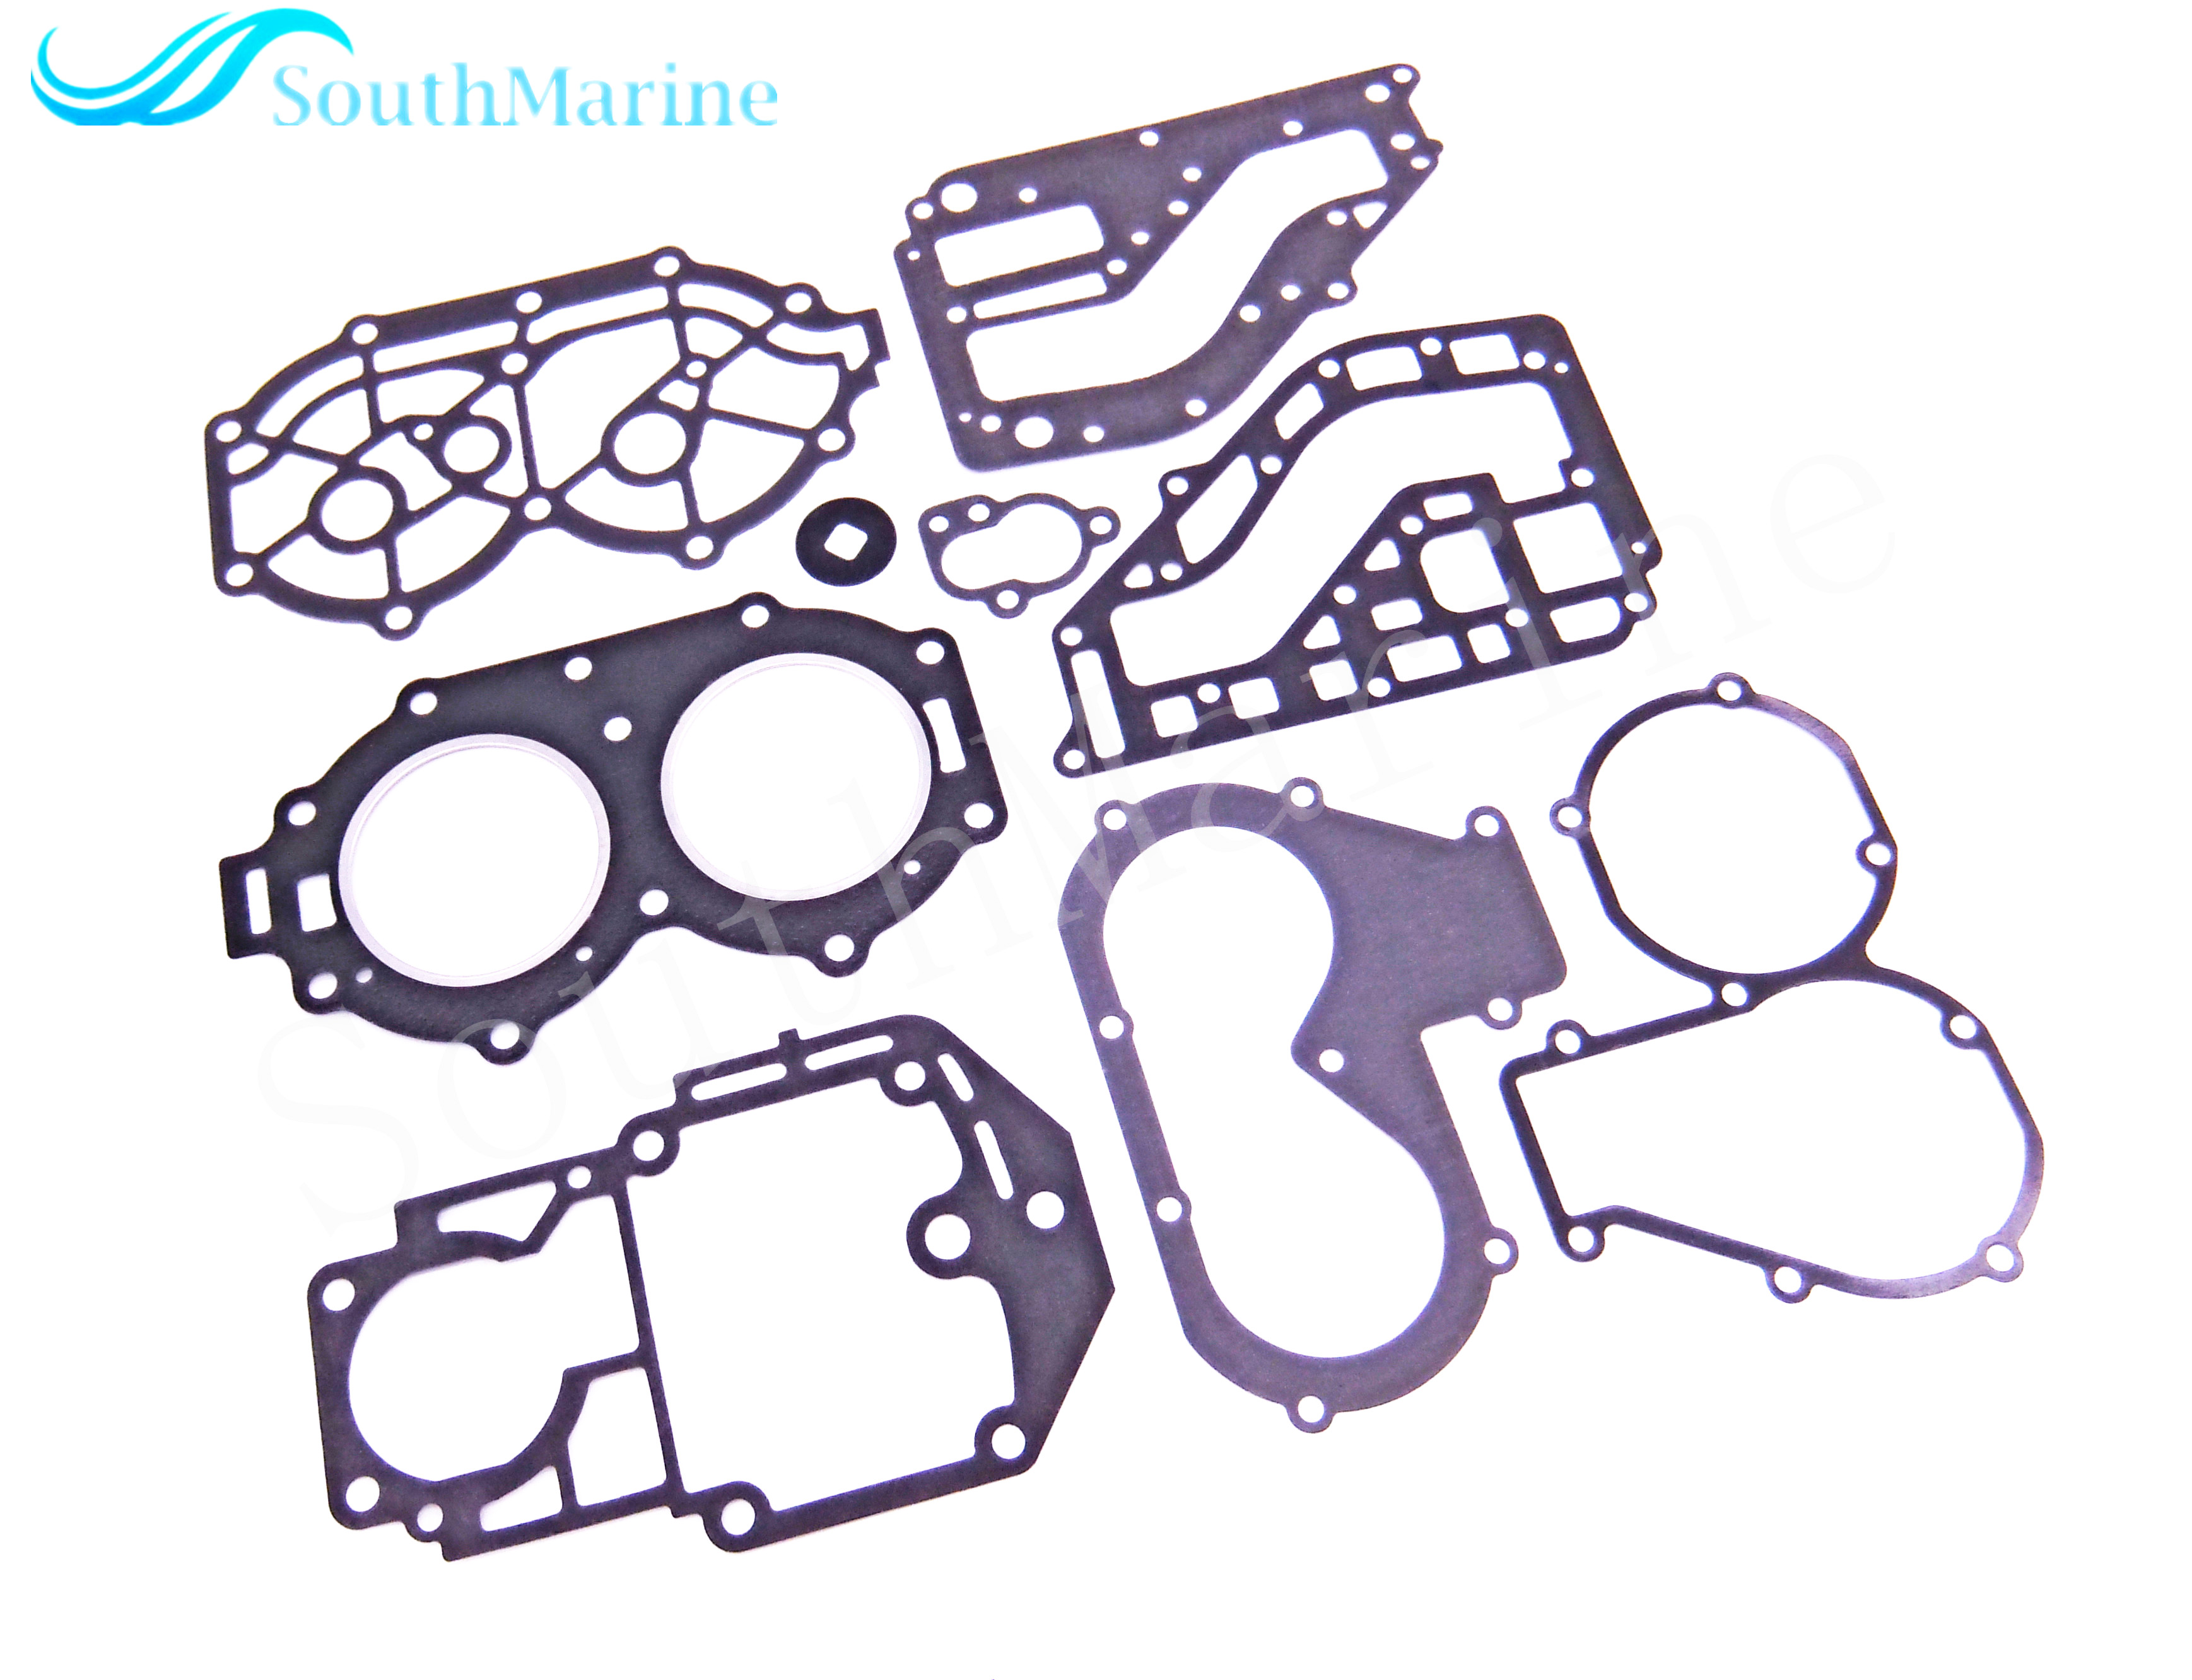 Outboard Engine Complete Power Head Seal Gasket Kit for Hidea 25F 30F Boat Motor Free ShippingOutboard Engine Complete Power Head Seal Gasket Kit for Hidea 25F 30F Boat Motor Free Shipping